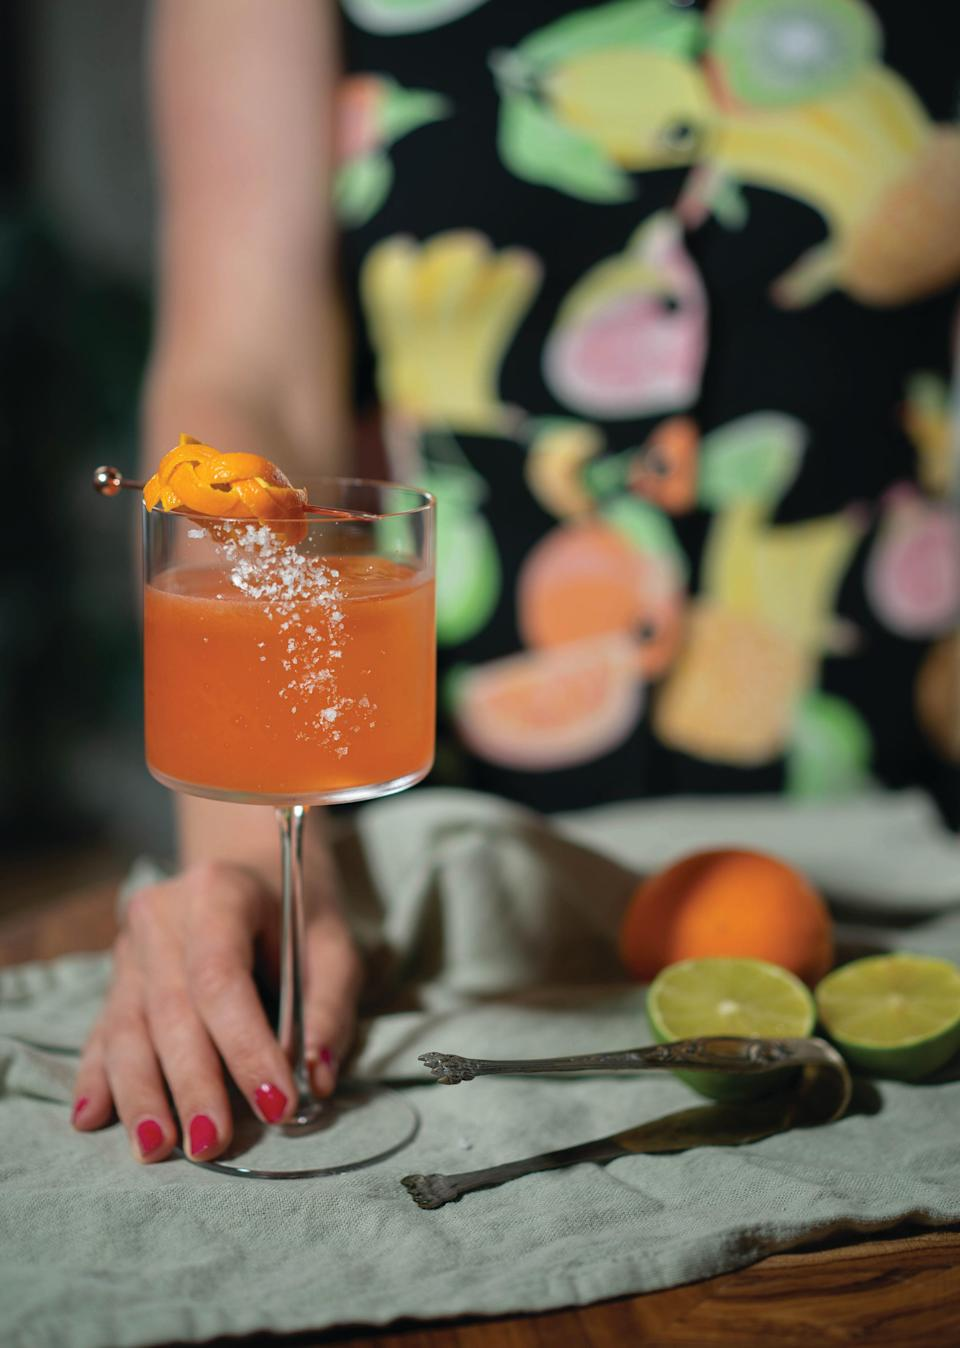 "Let's introduce your basic <a href=""https://www.epicurious.com/recipes/food/views/the-classic-margarita-238570?mbid=synd_yahoo_rss"" rel=""nofollow noopener"" target=""_blank"" data-ylk=""slk:margarita"" class=""link rapid-noclick-resp"">margarita</a> to our friend Aperol. We think they'll get along great. <a href=""https://www.epicurious.com/recipes/food/views/margarita-in-venezia-tequila-aperol-cocktail-beautiful-booze?mbid=synd_yahoo_rss"" rel=""nofollow noopener"" target=""_blank"" data-ylk=""slk:See recipe."" class=""link rapid-noclick-resp"">See recipe.</a>"